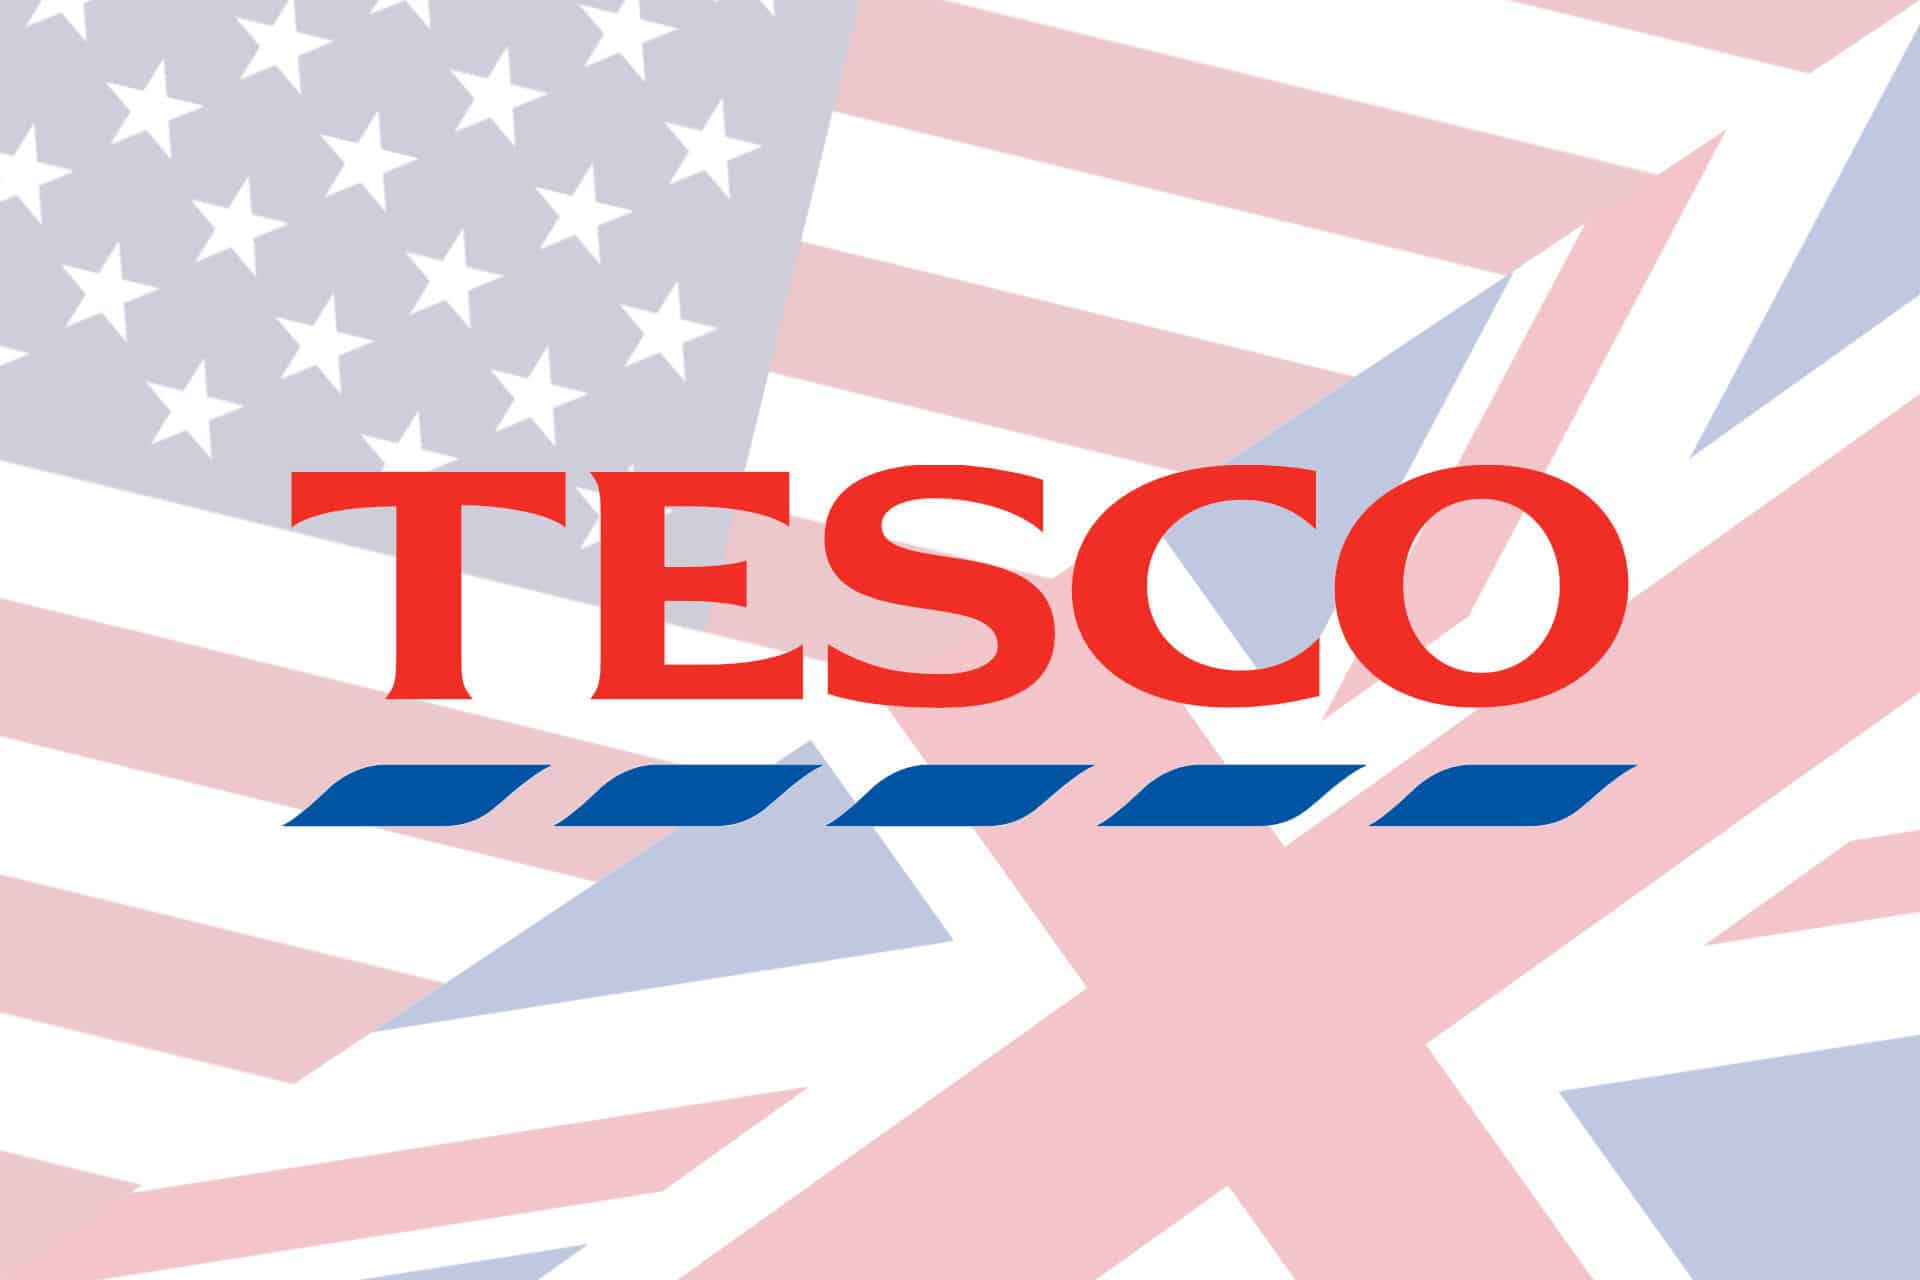 Tesco logo over US and UK flags